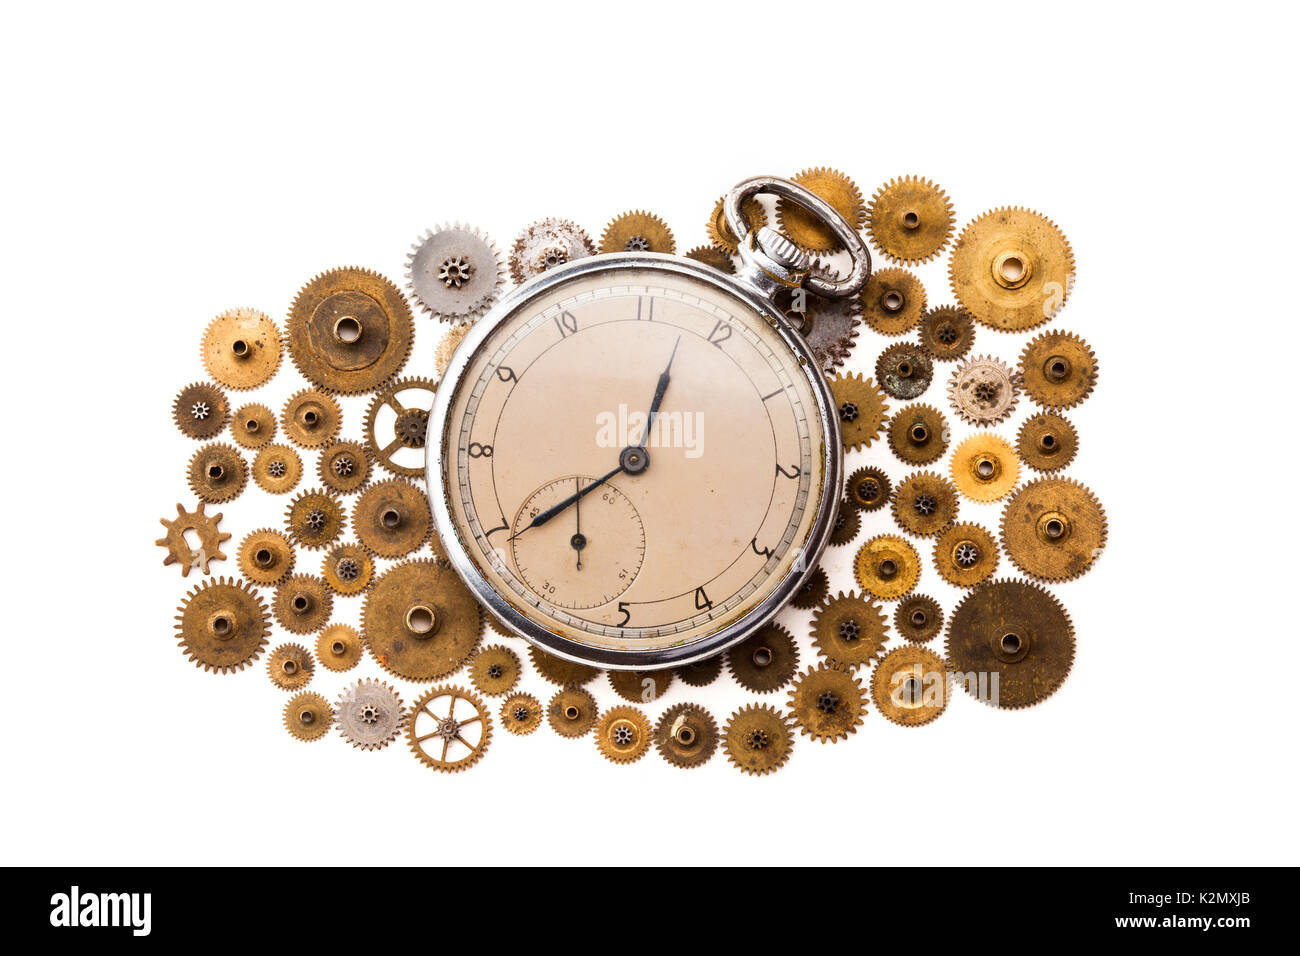 Vintage pocket watch and cogs gears wheels on white background. Vintage clockwork parts closeup. shallow depth of field. - Stock Image